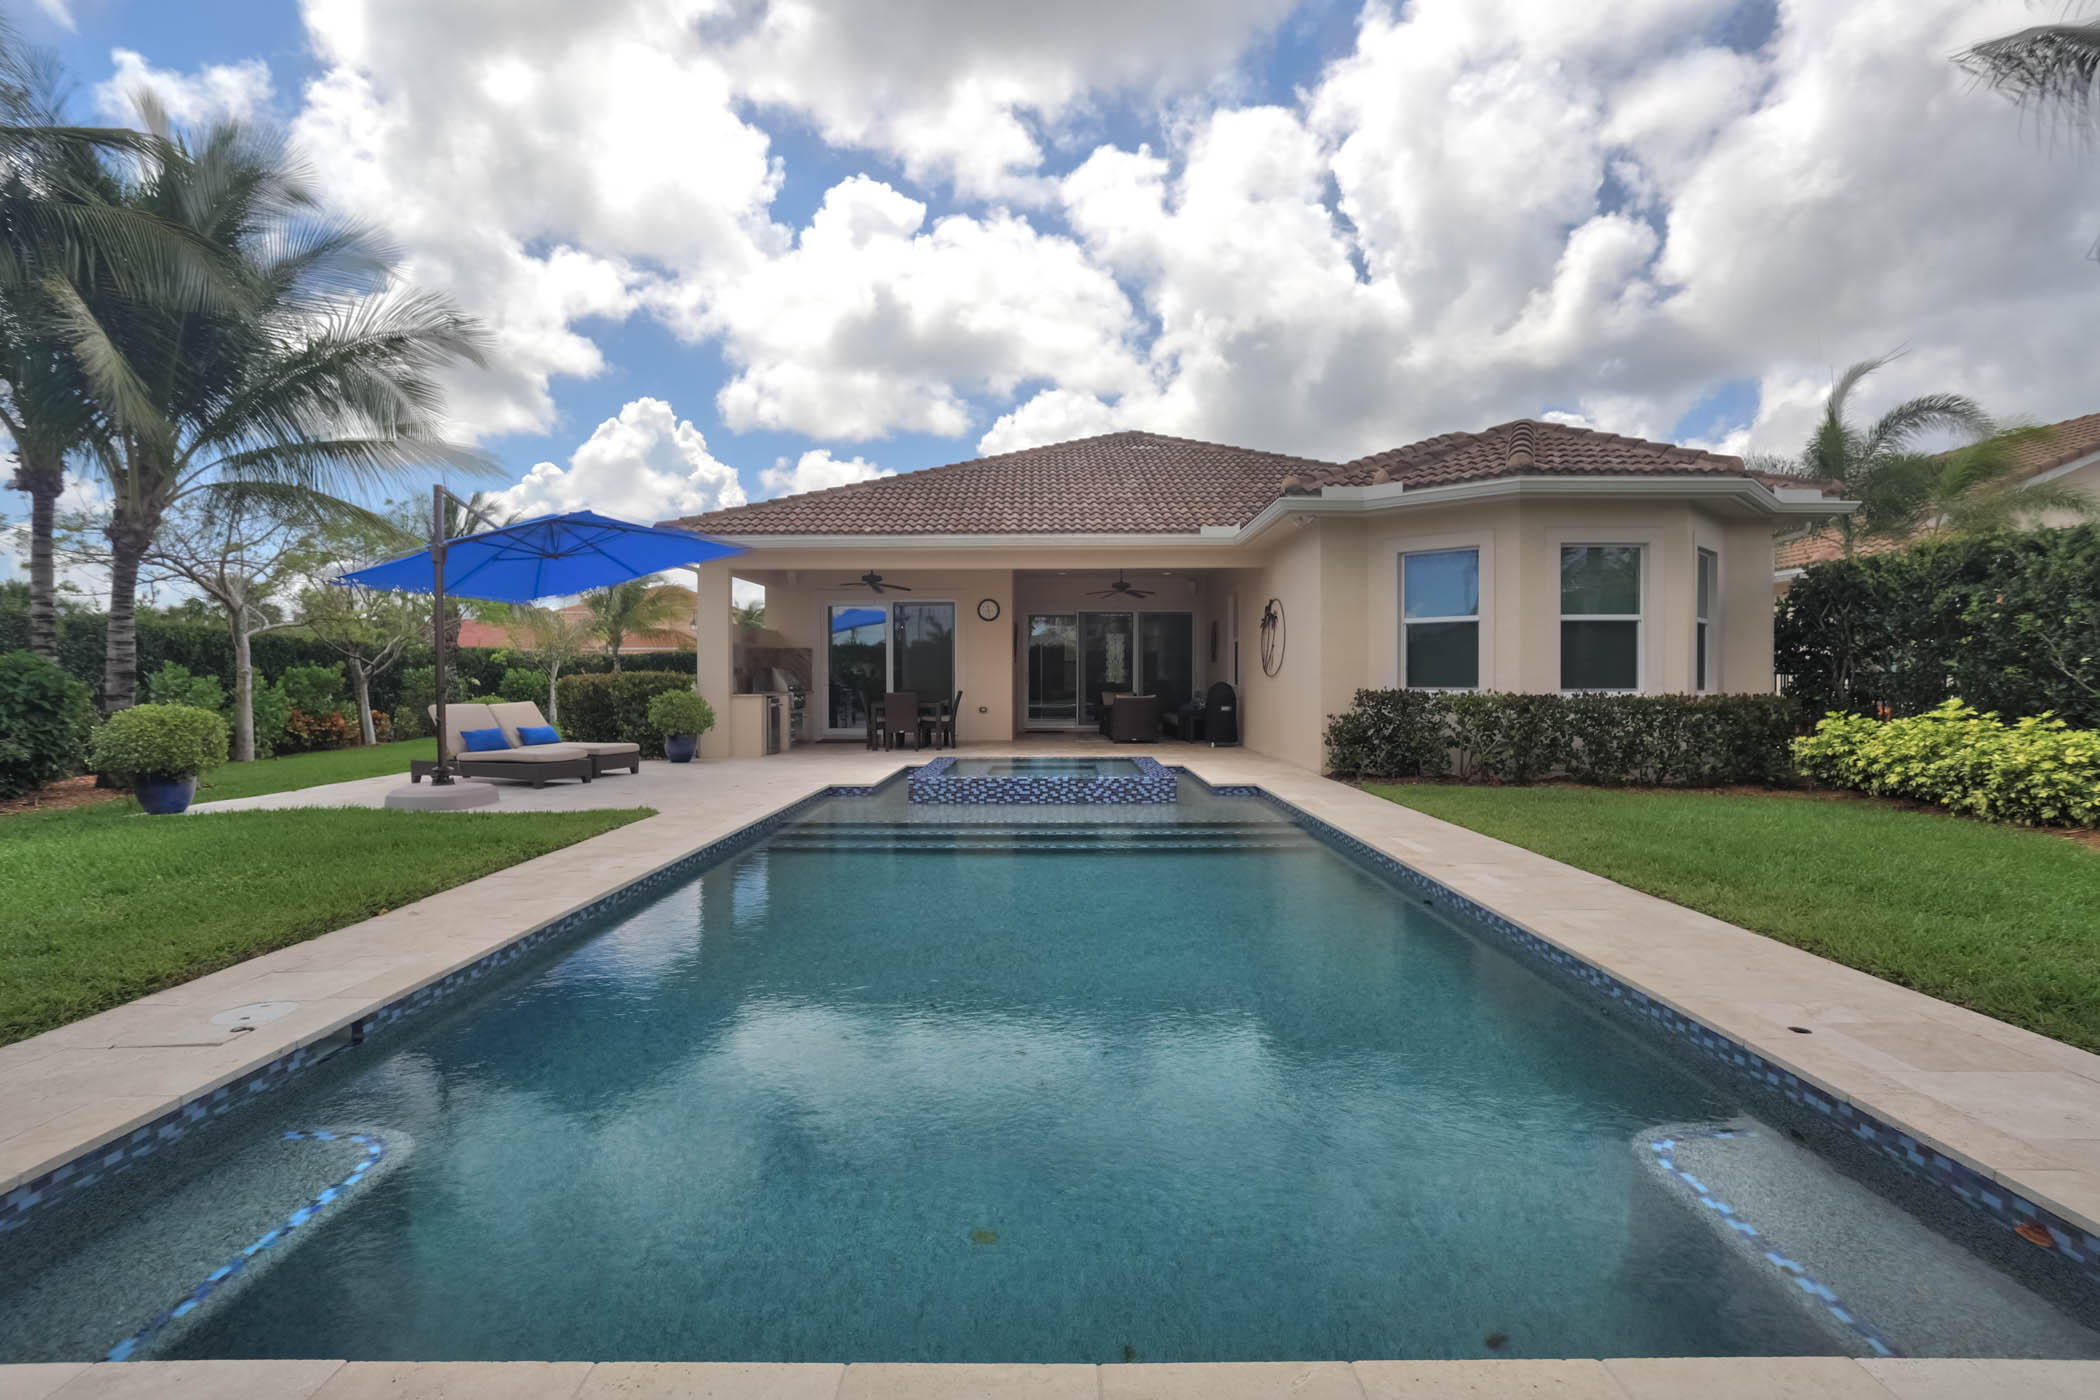 New Home for sale at 263 Carina Drive in Jupiter